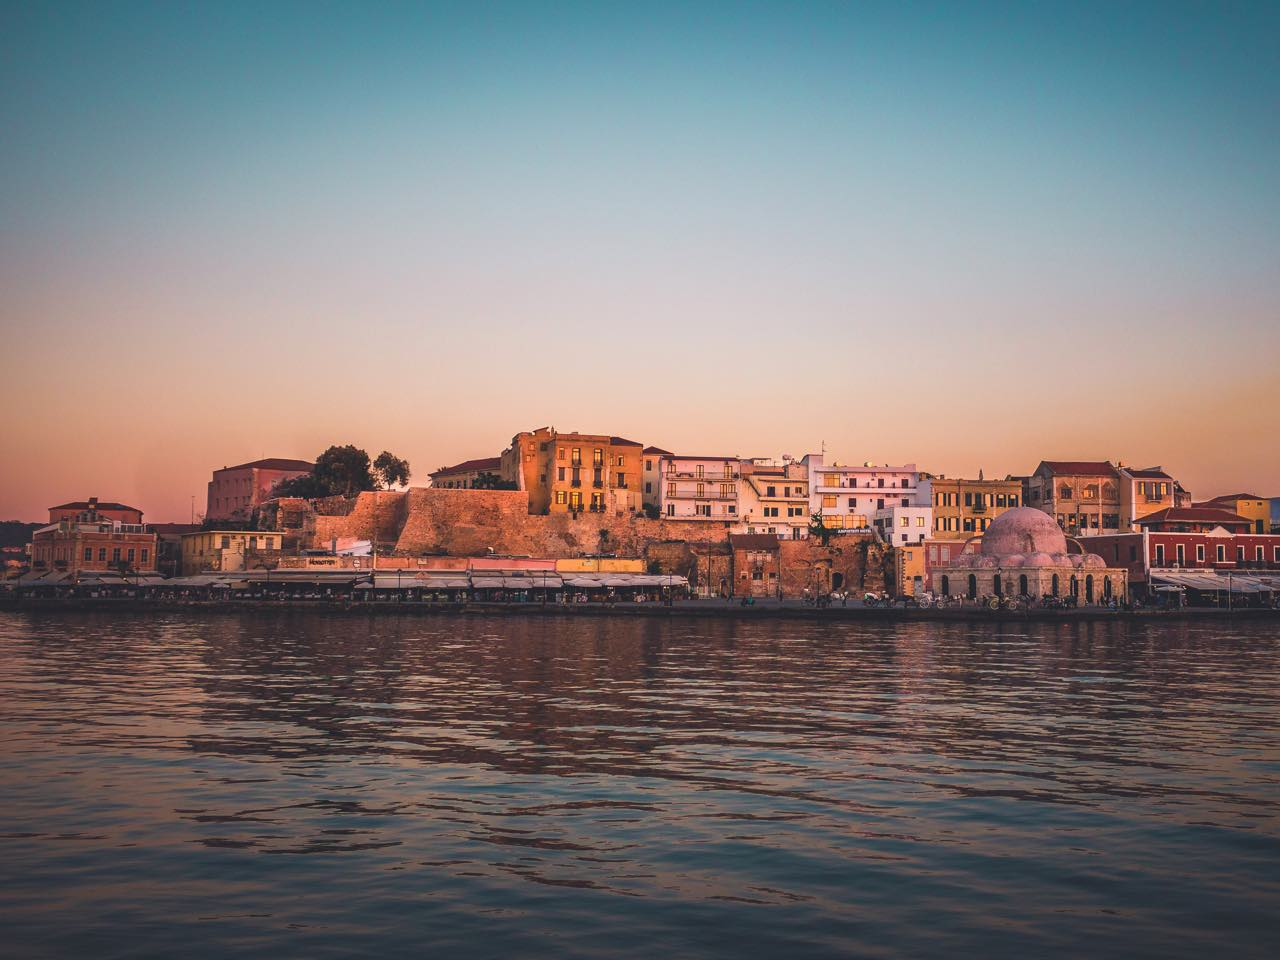 Chania Old Town Walks - Private Tour With Official Guide, best city walk tour chania crete, history social tour chania crete, city tour hania crete, activities chania crete, things to do chania, sightseeing chania crete